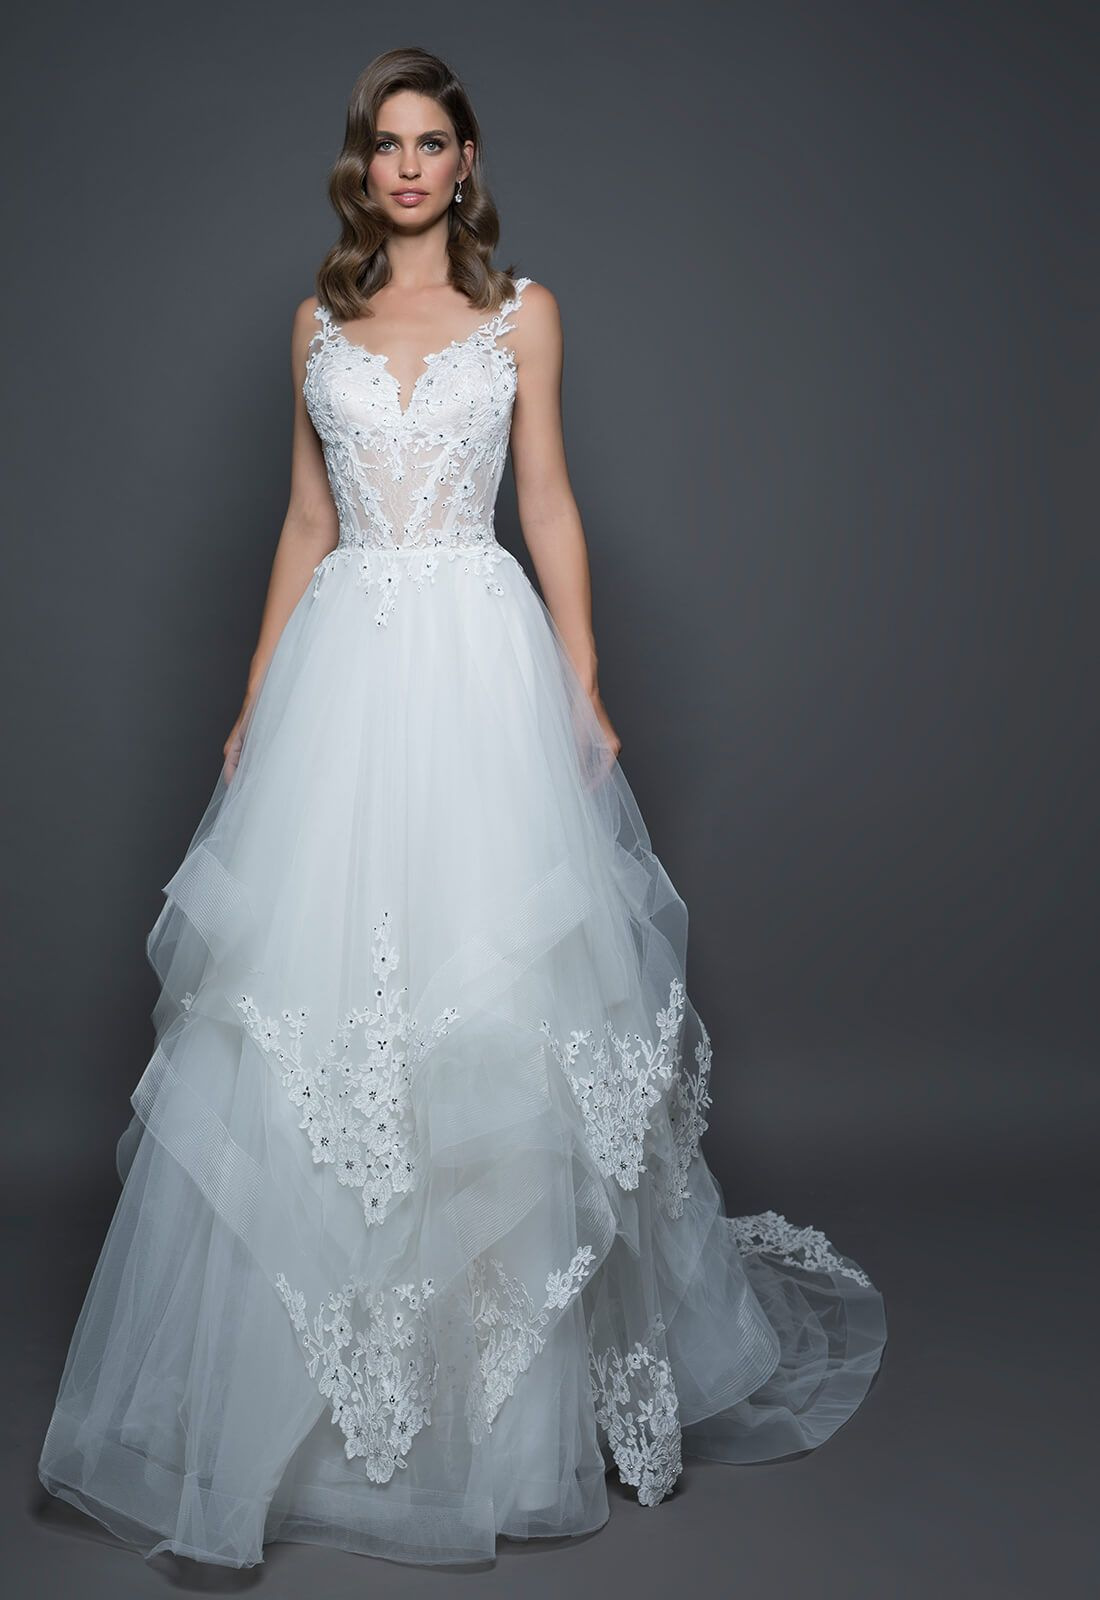 Generous Wedding Gowns Styles Ideas - Wedding Ideas - memiocall.com